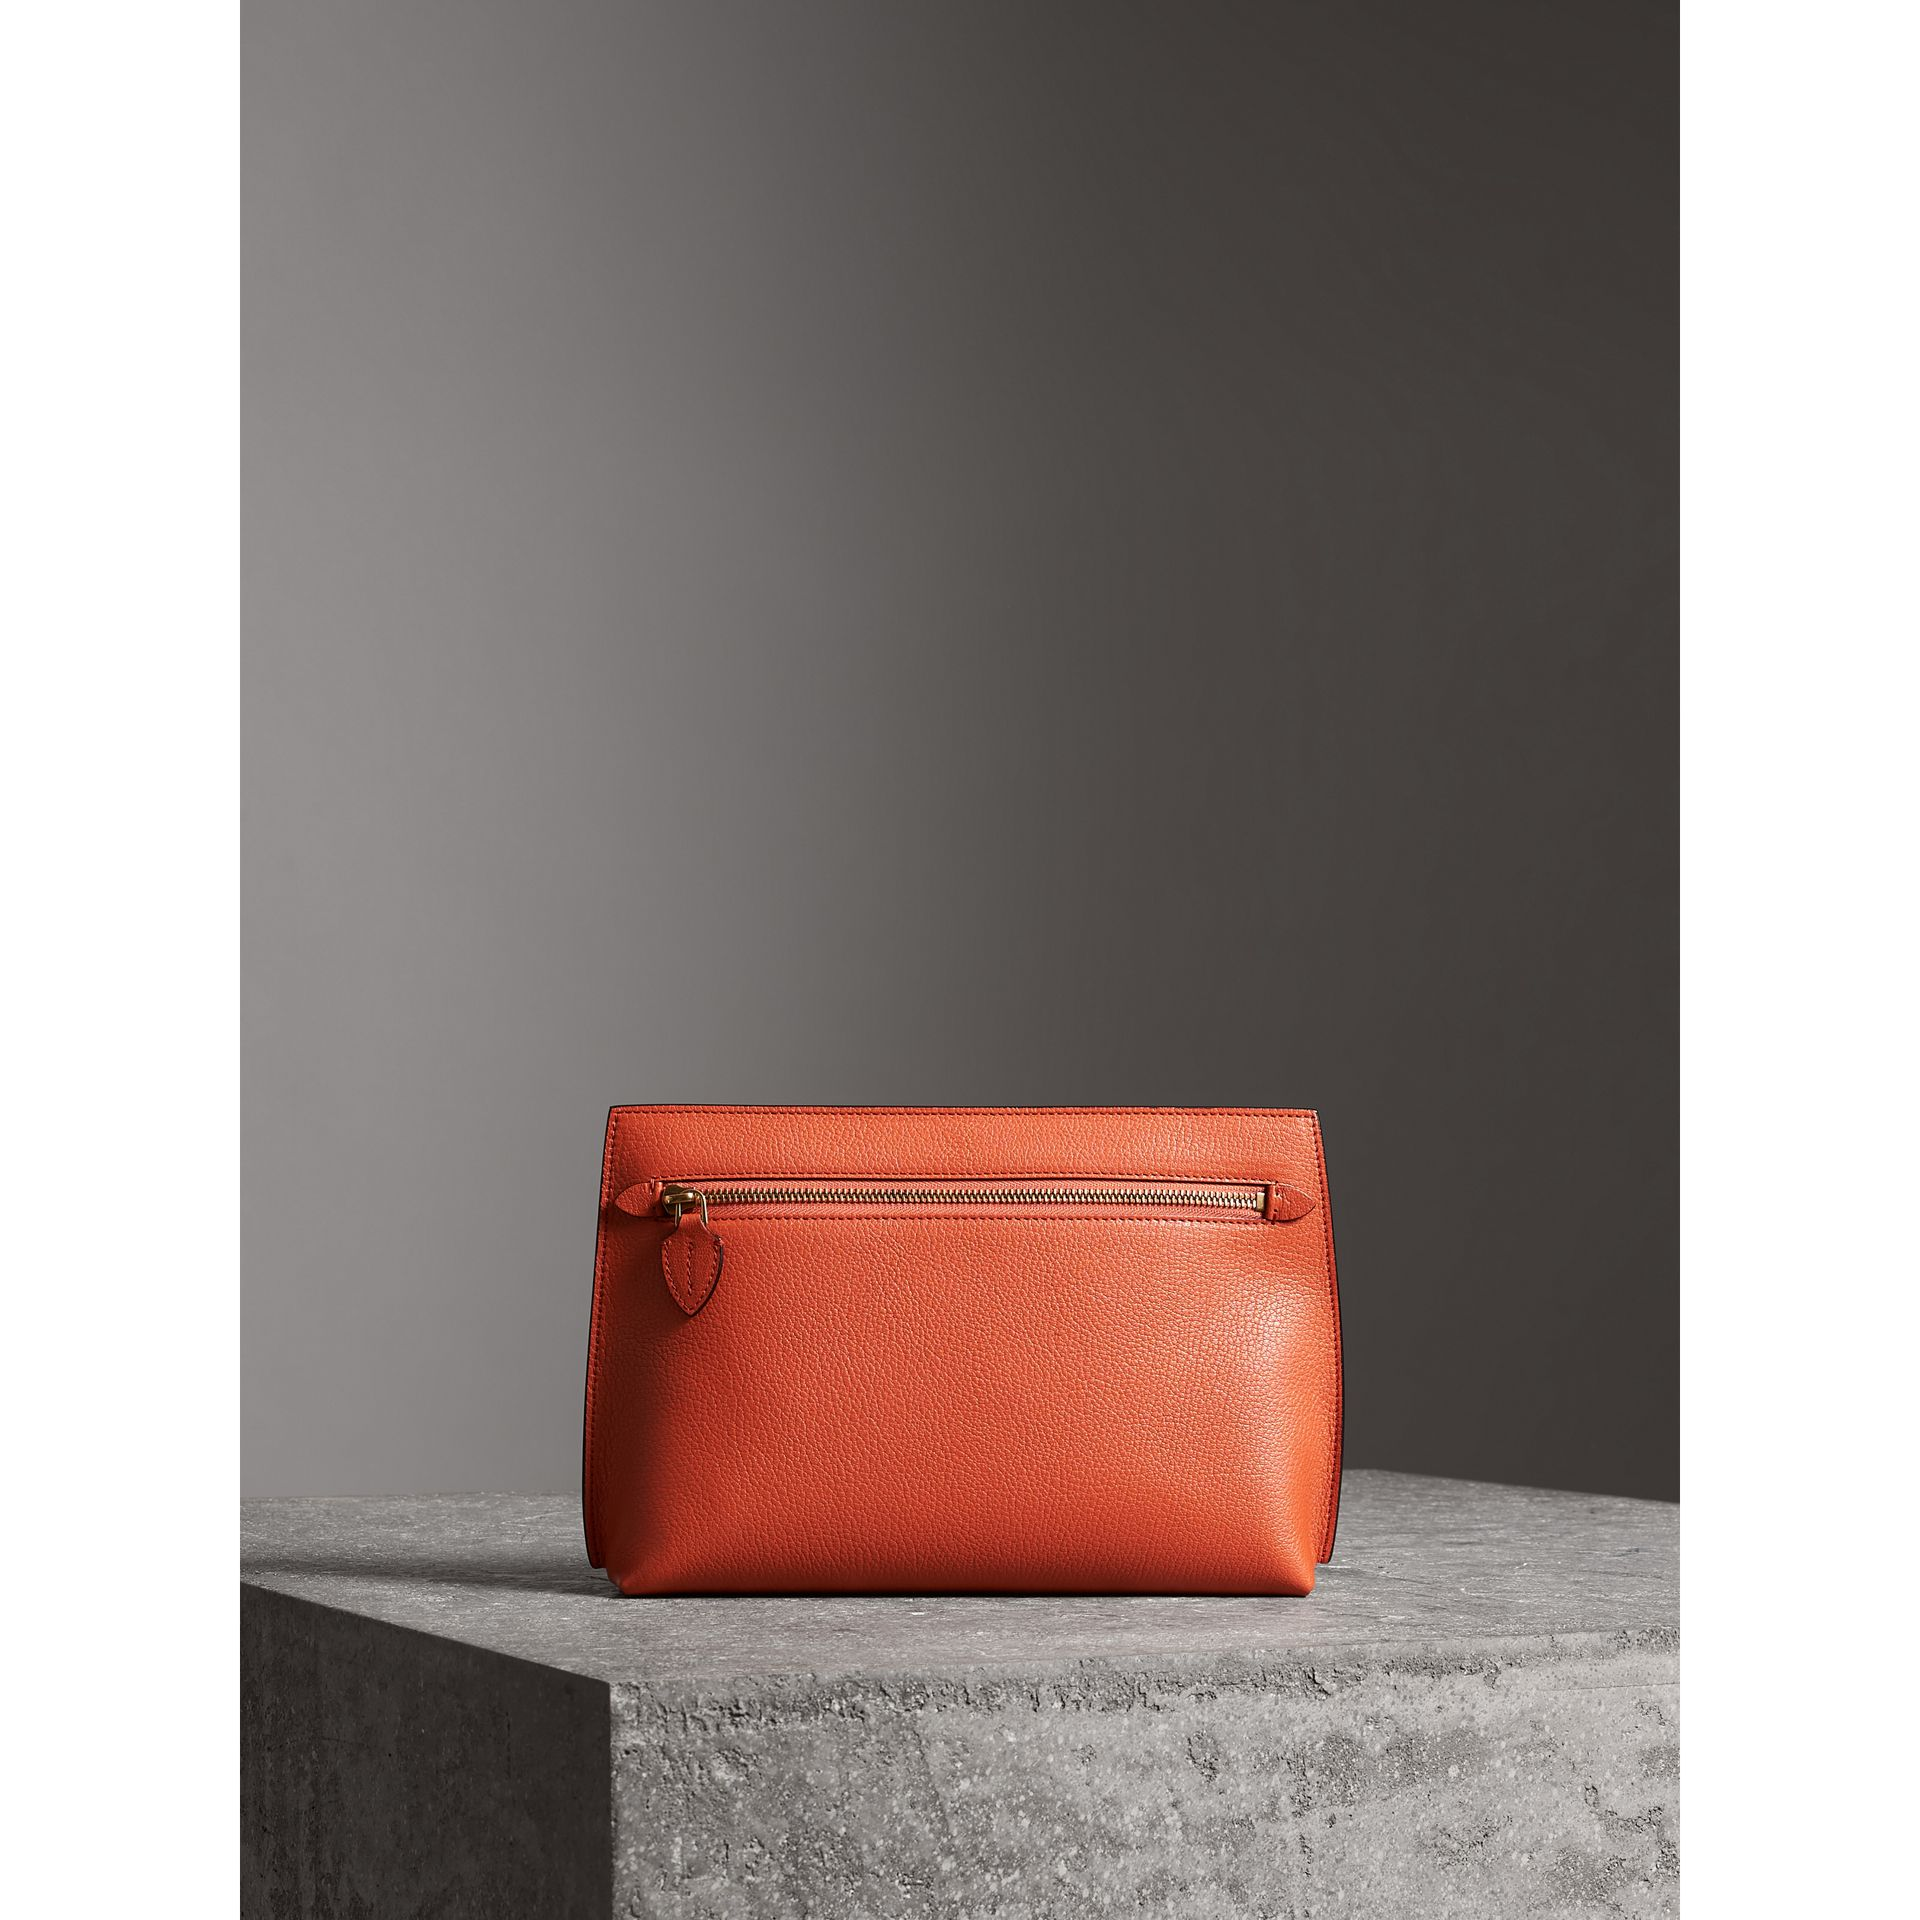 Grainy Leather Wristlet Clutch in Clementine - Women | Burberry United Kingdom - gallery image 5